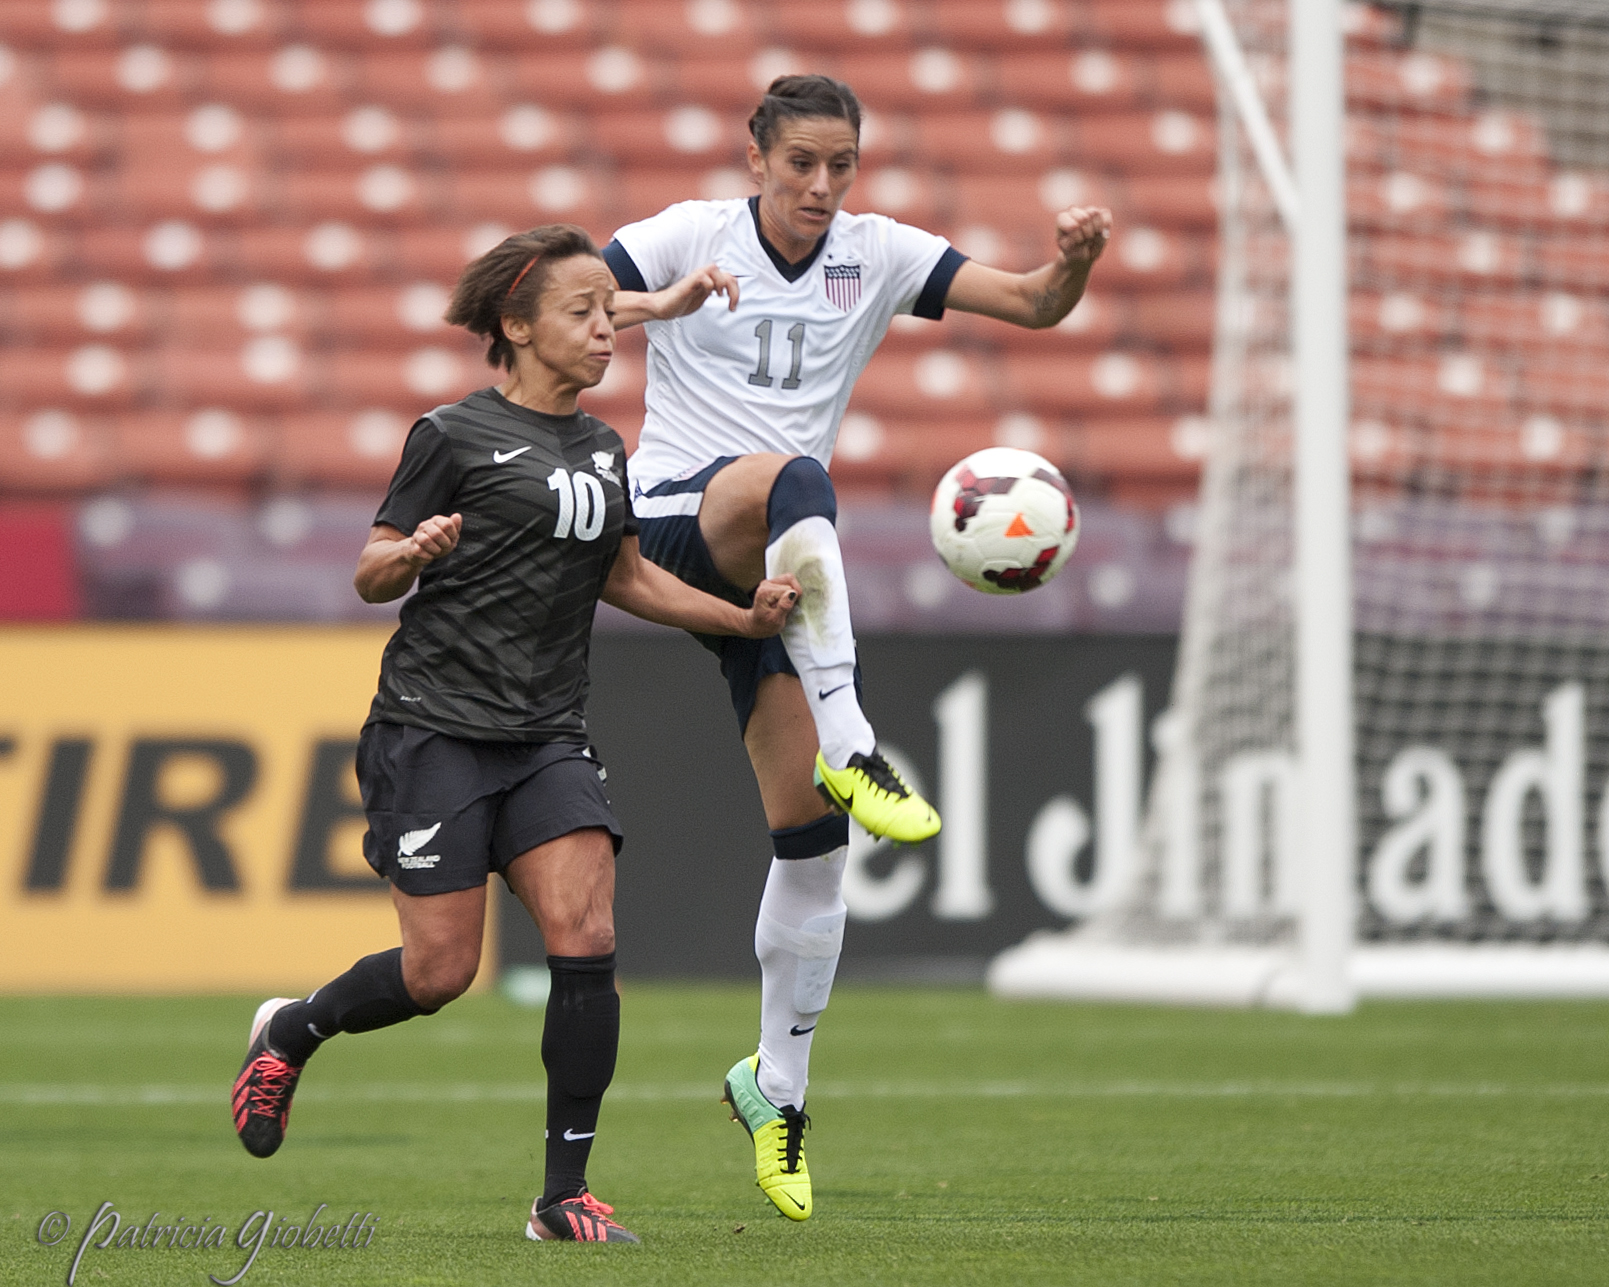 The USWNT will reportedly play New Zealand on April 4 in St. Louis.  (Photo Copyright Patricia Giobetti)